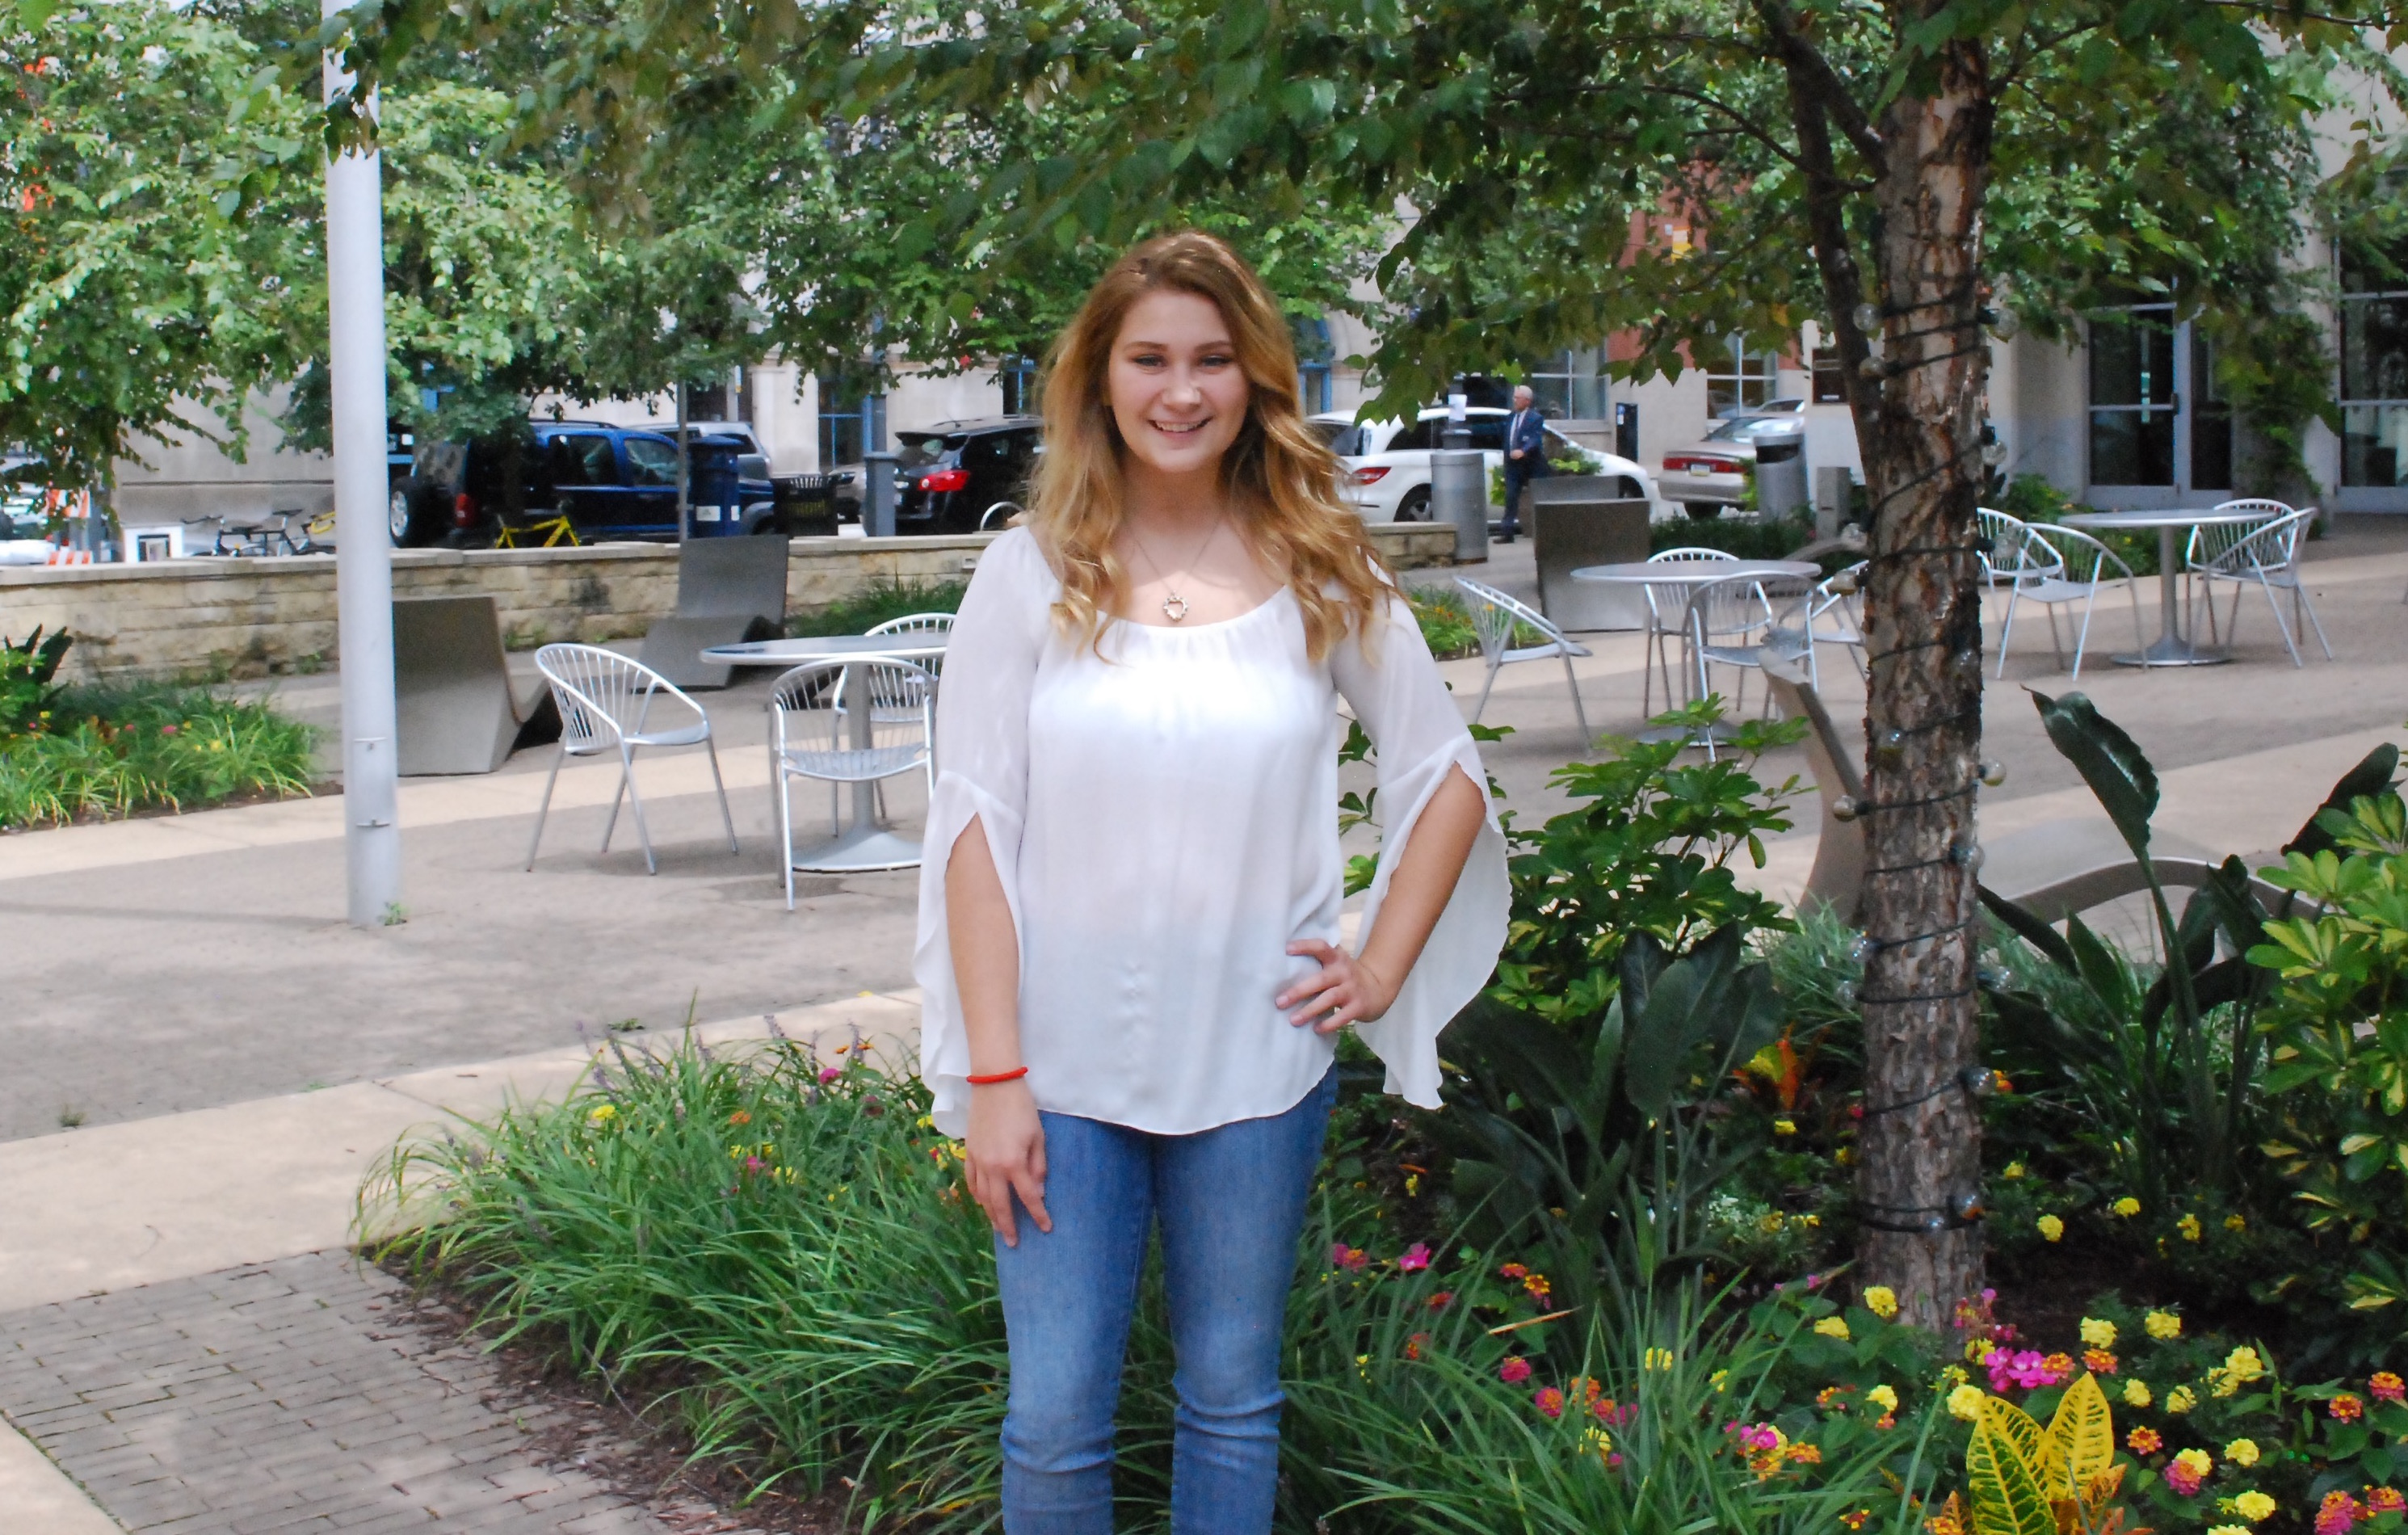 Pictured is Isabella Yobbagy, Psychology Major